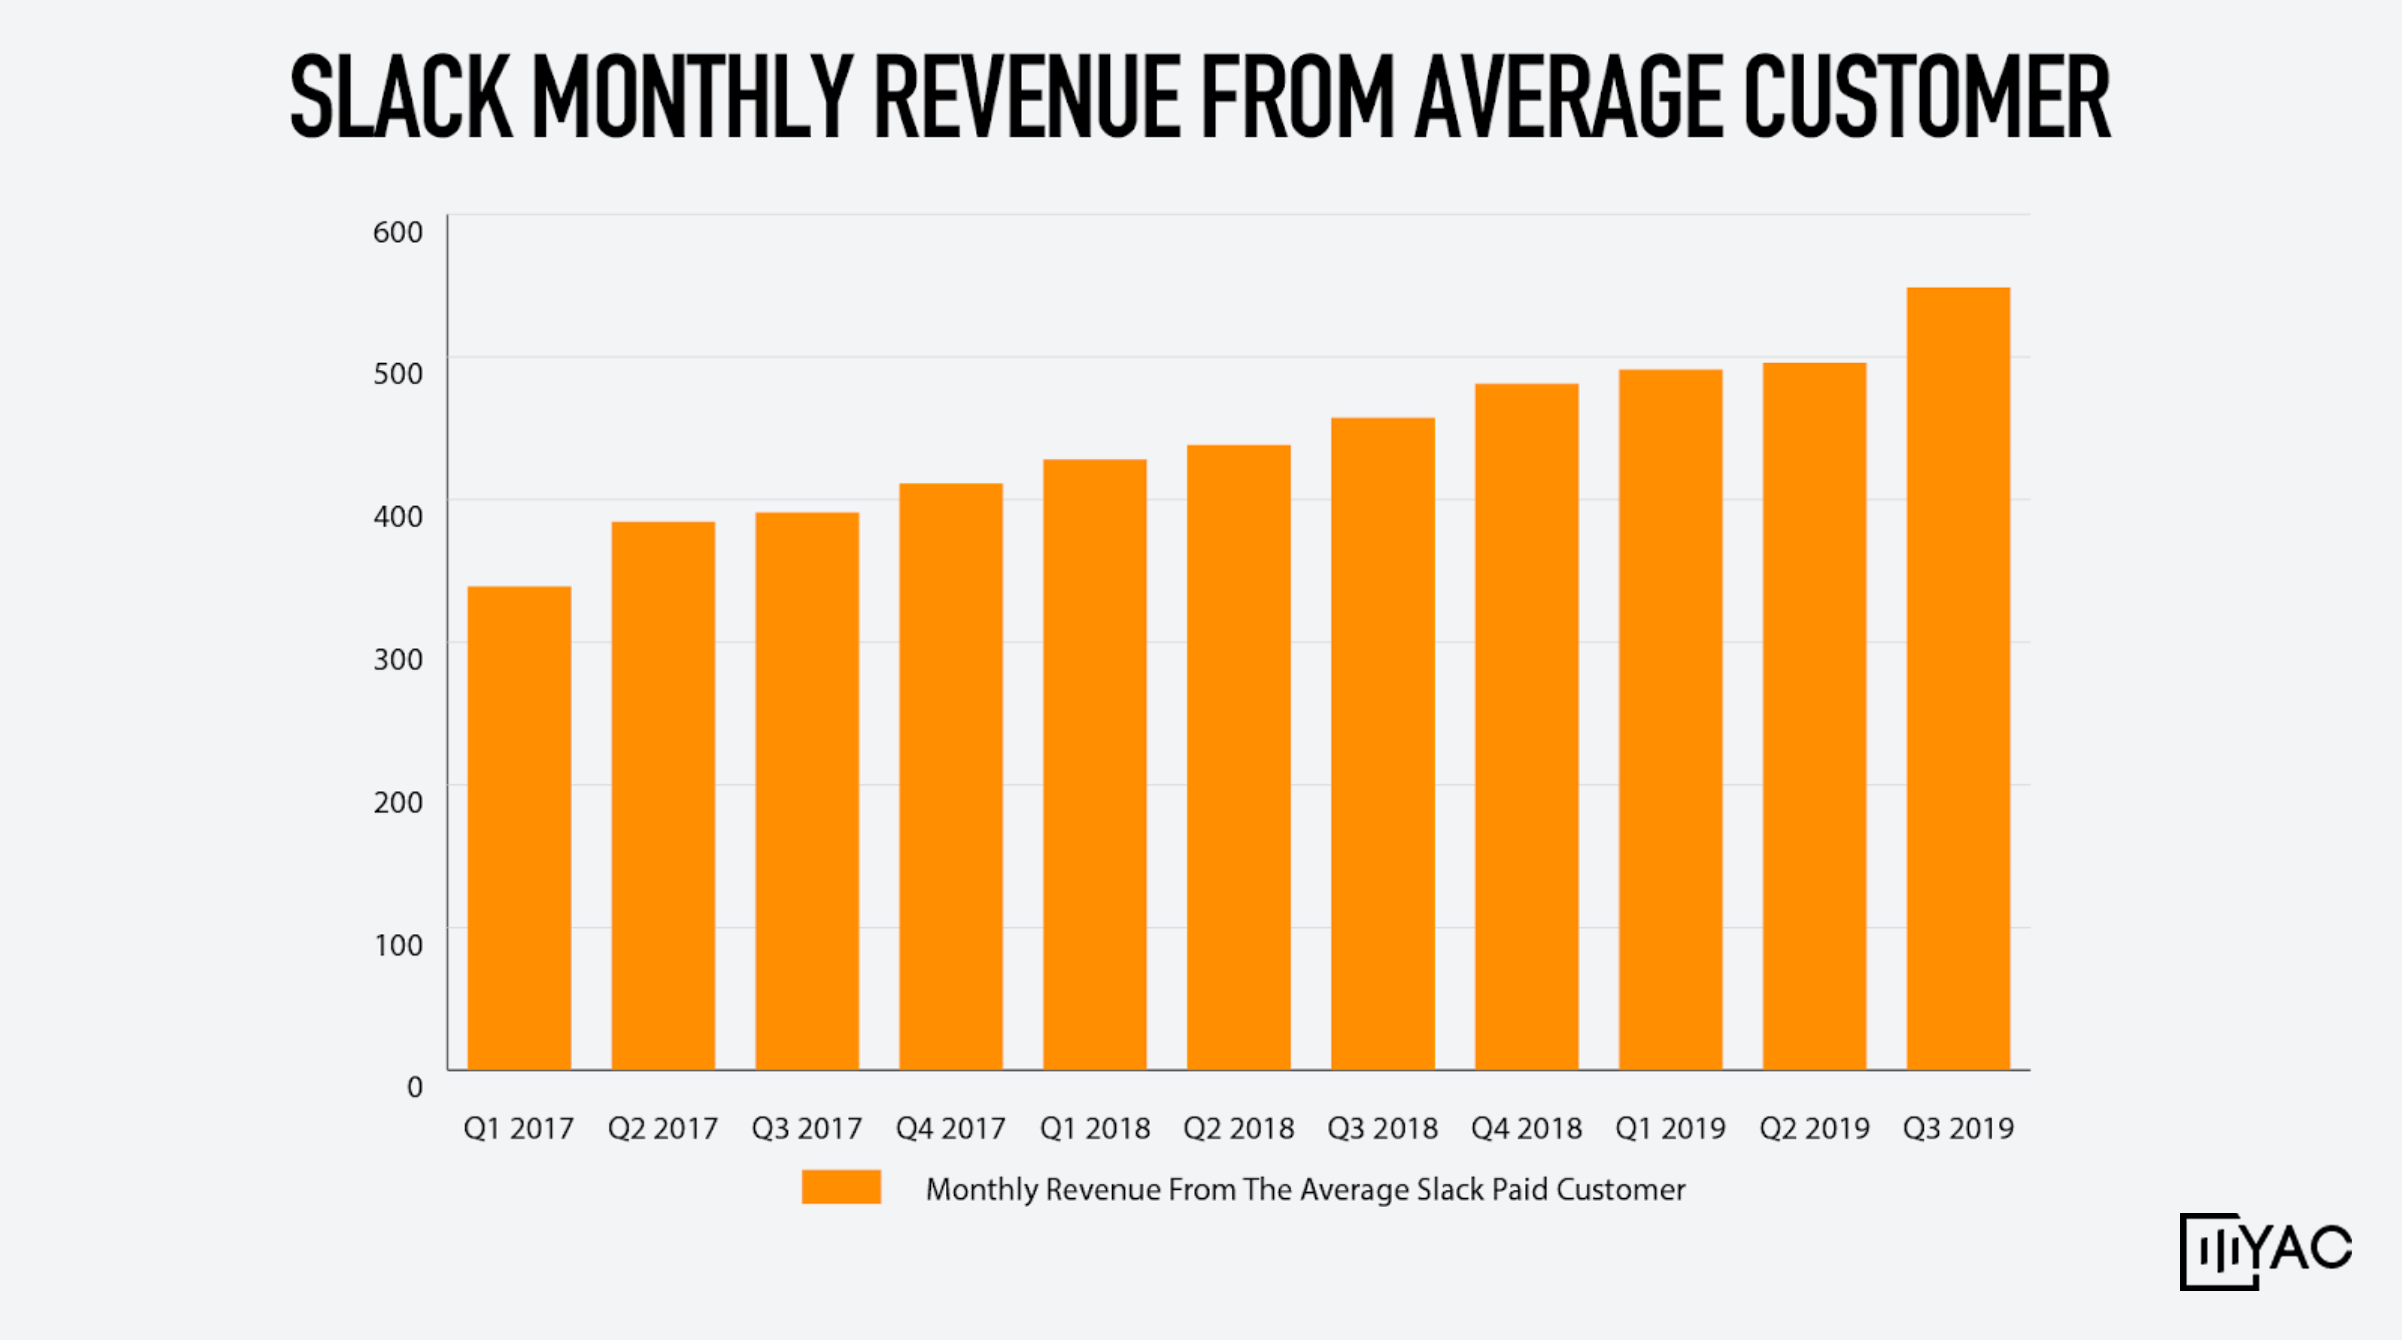 Slack monthly revenue from average customers